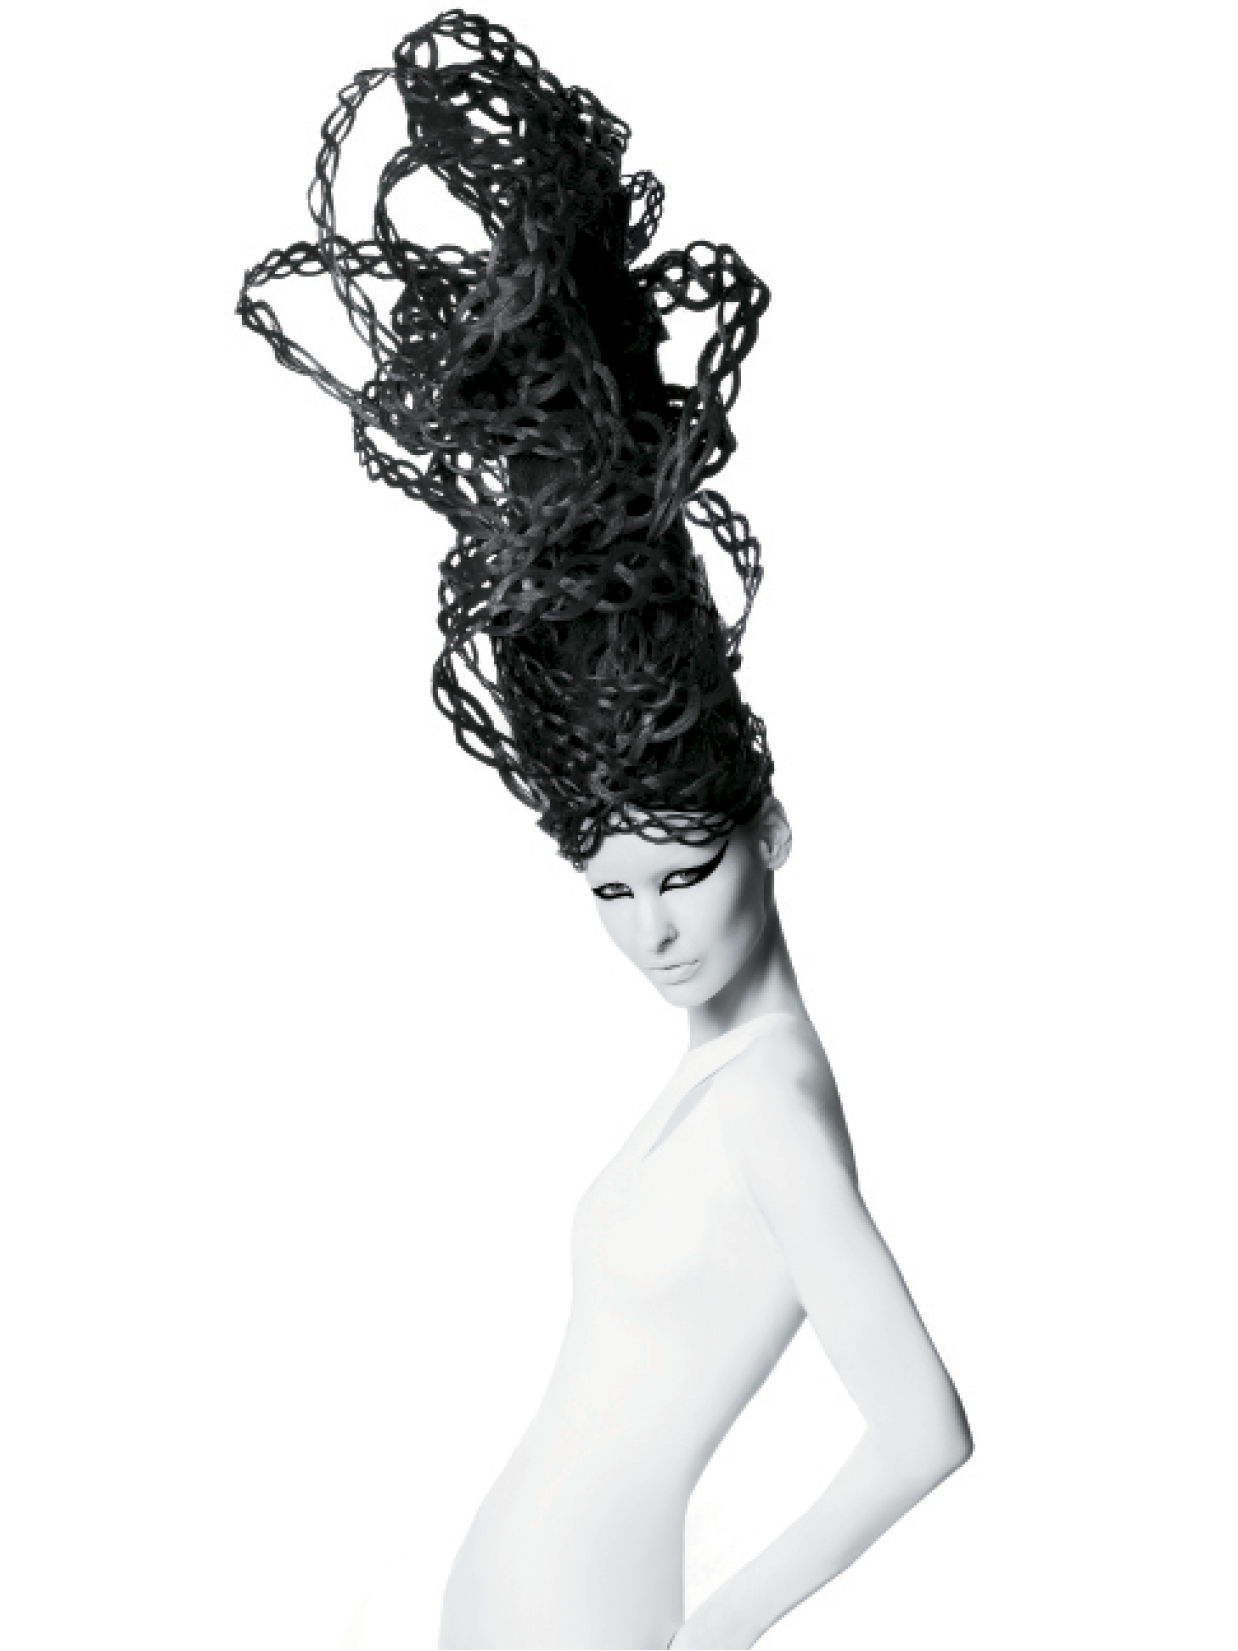 To create this four-strand braided updo, The Smiths used assorted human hair wefts, braiding each one and gently pulling the weaves apart. To set each rope, they sprayed extra-hold hairspray and partnered with a flat-iron, and glued each braid to a pre-made base of delicate mesh wire.